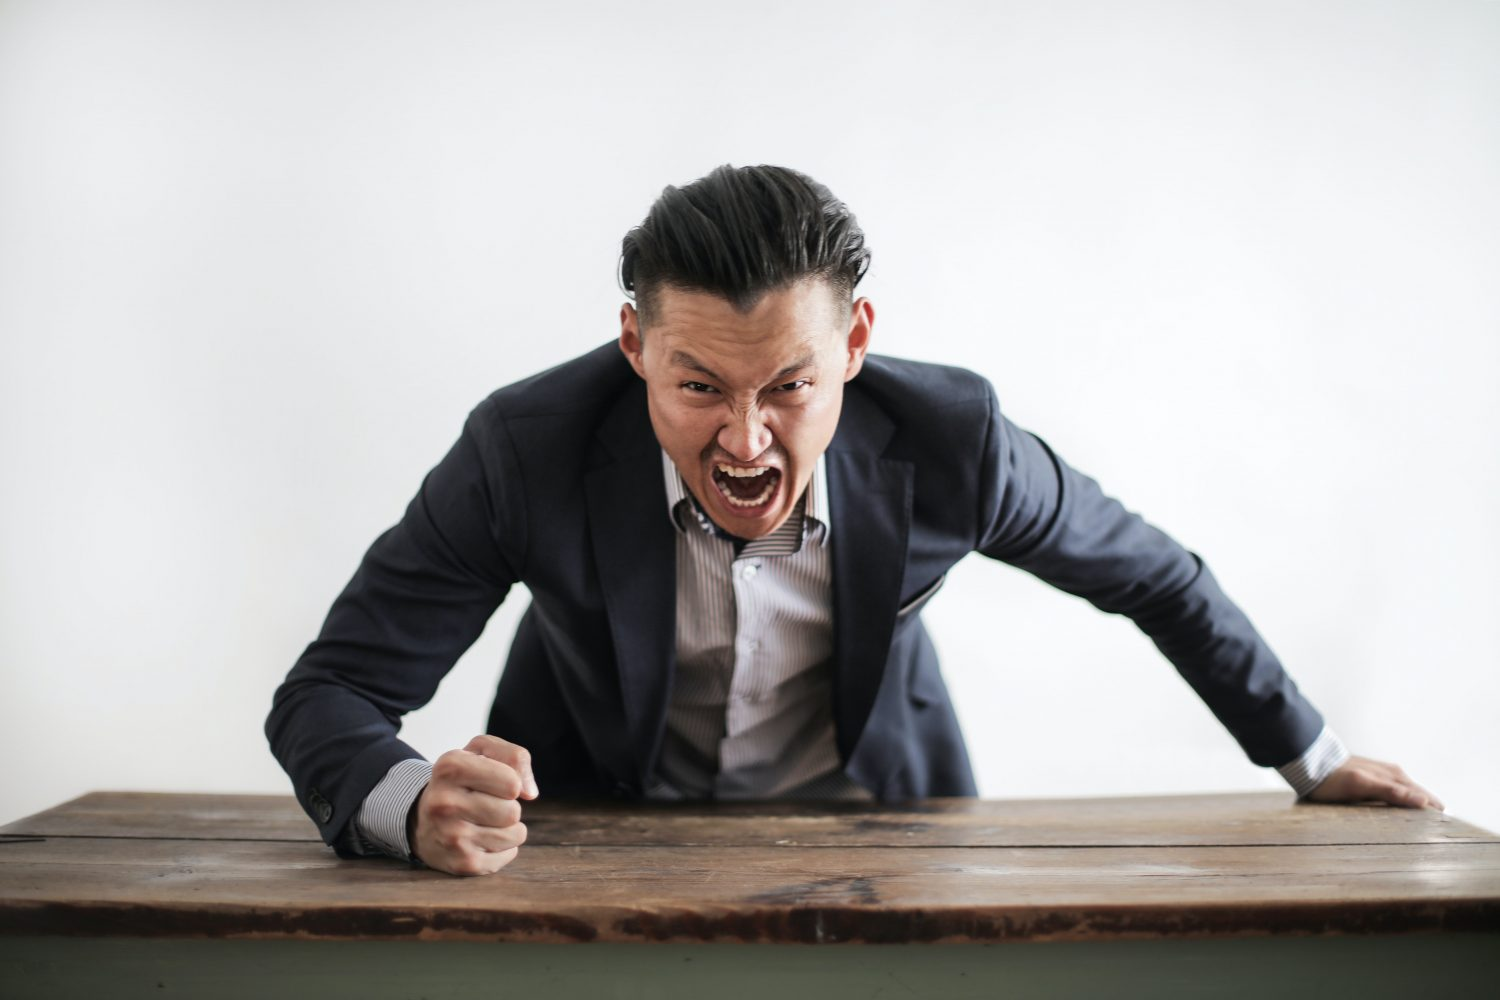 how to deal with angry people, according to psychology professor on tiktok